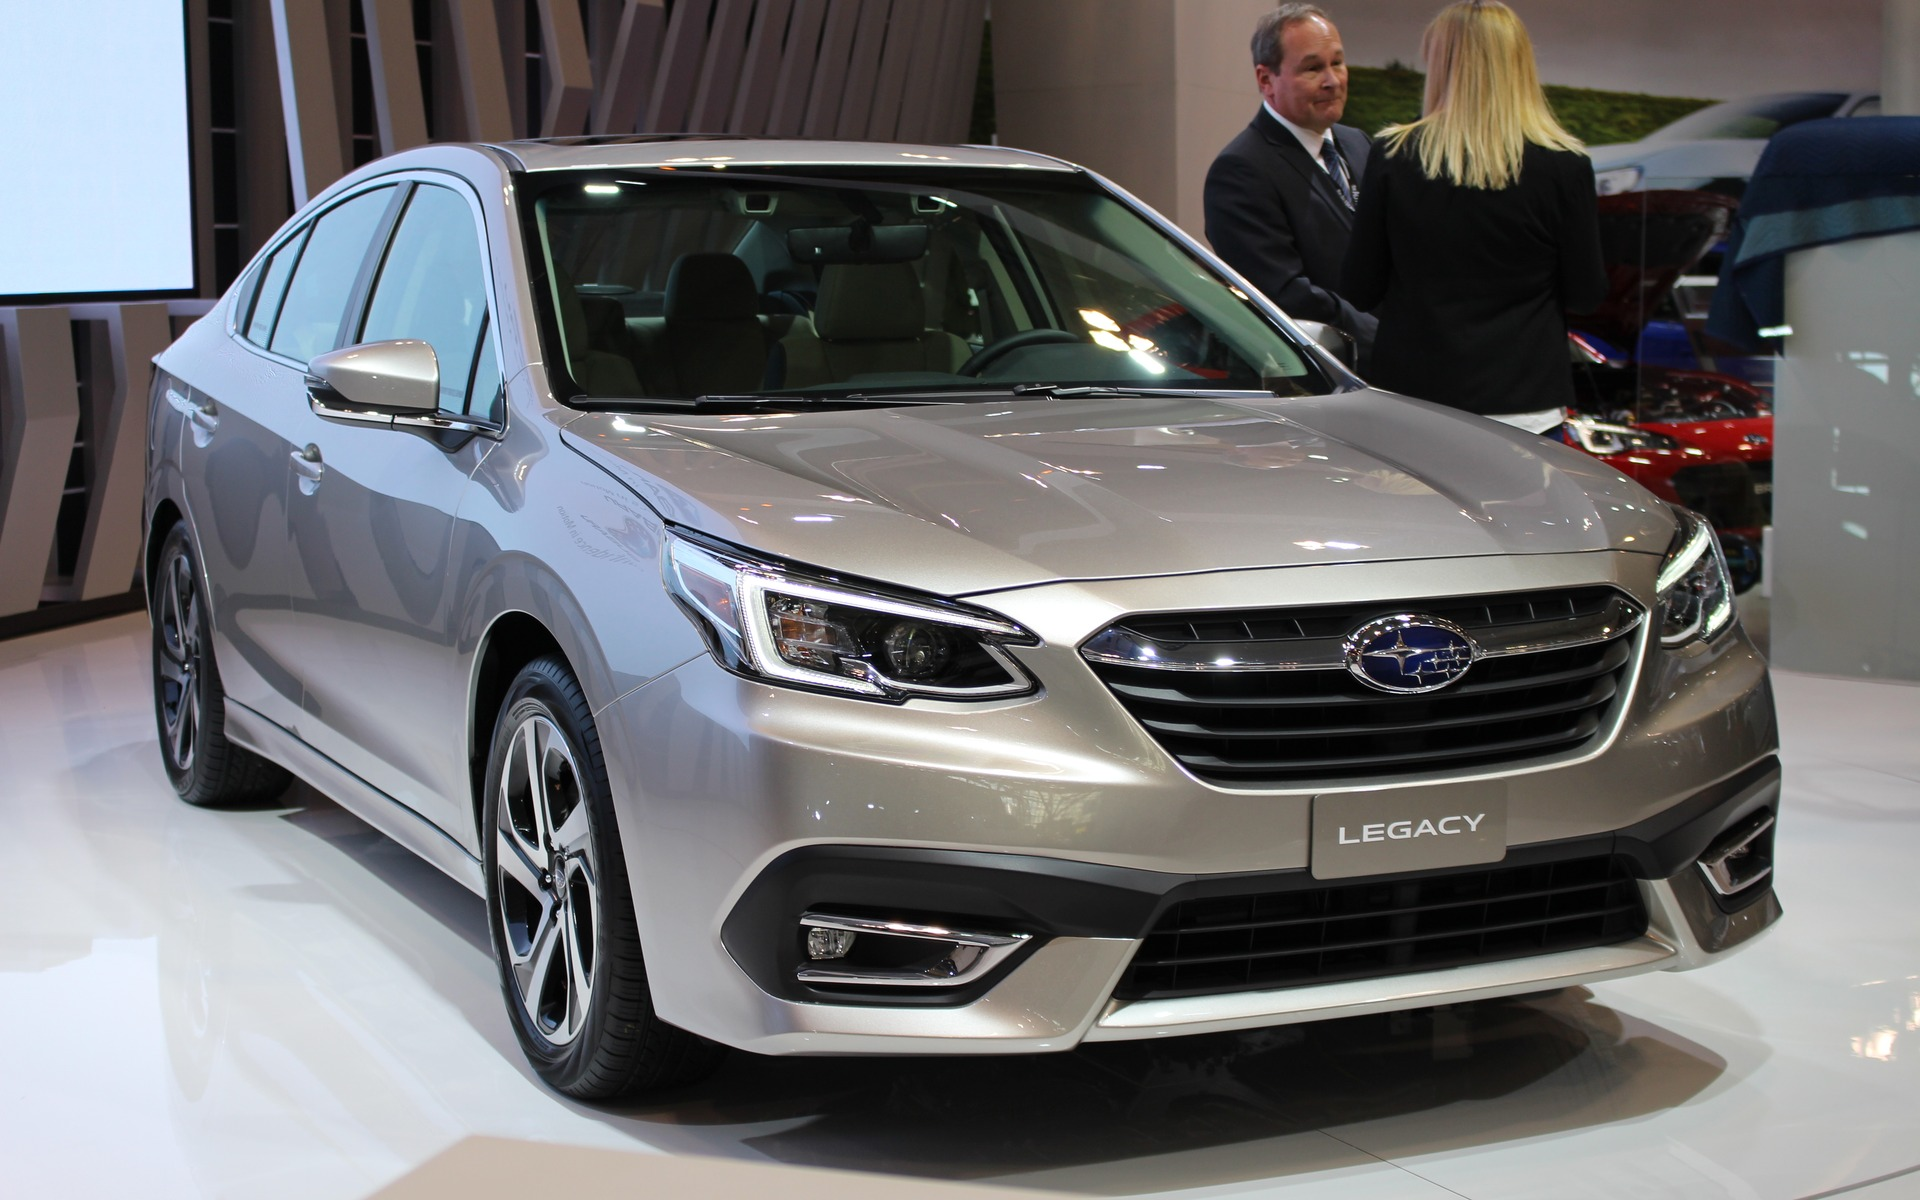 2020 Subaru Legacy Presented At The Toronto Auto Show The